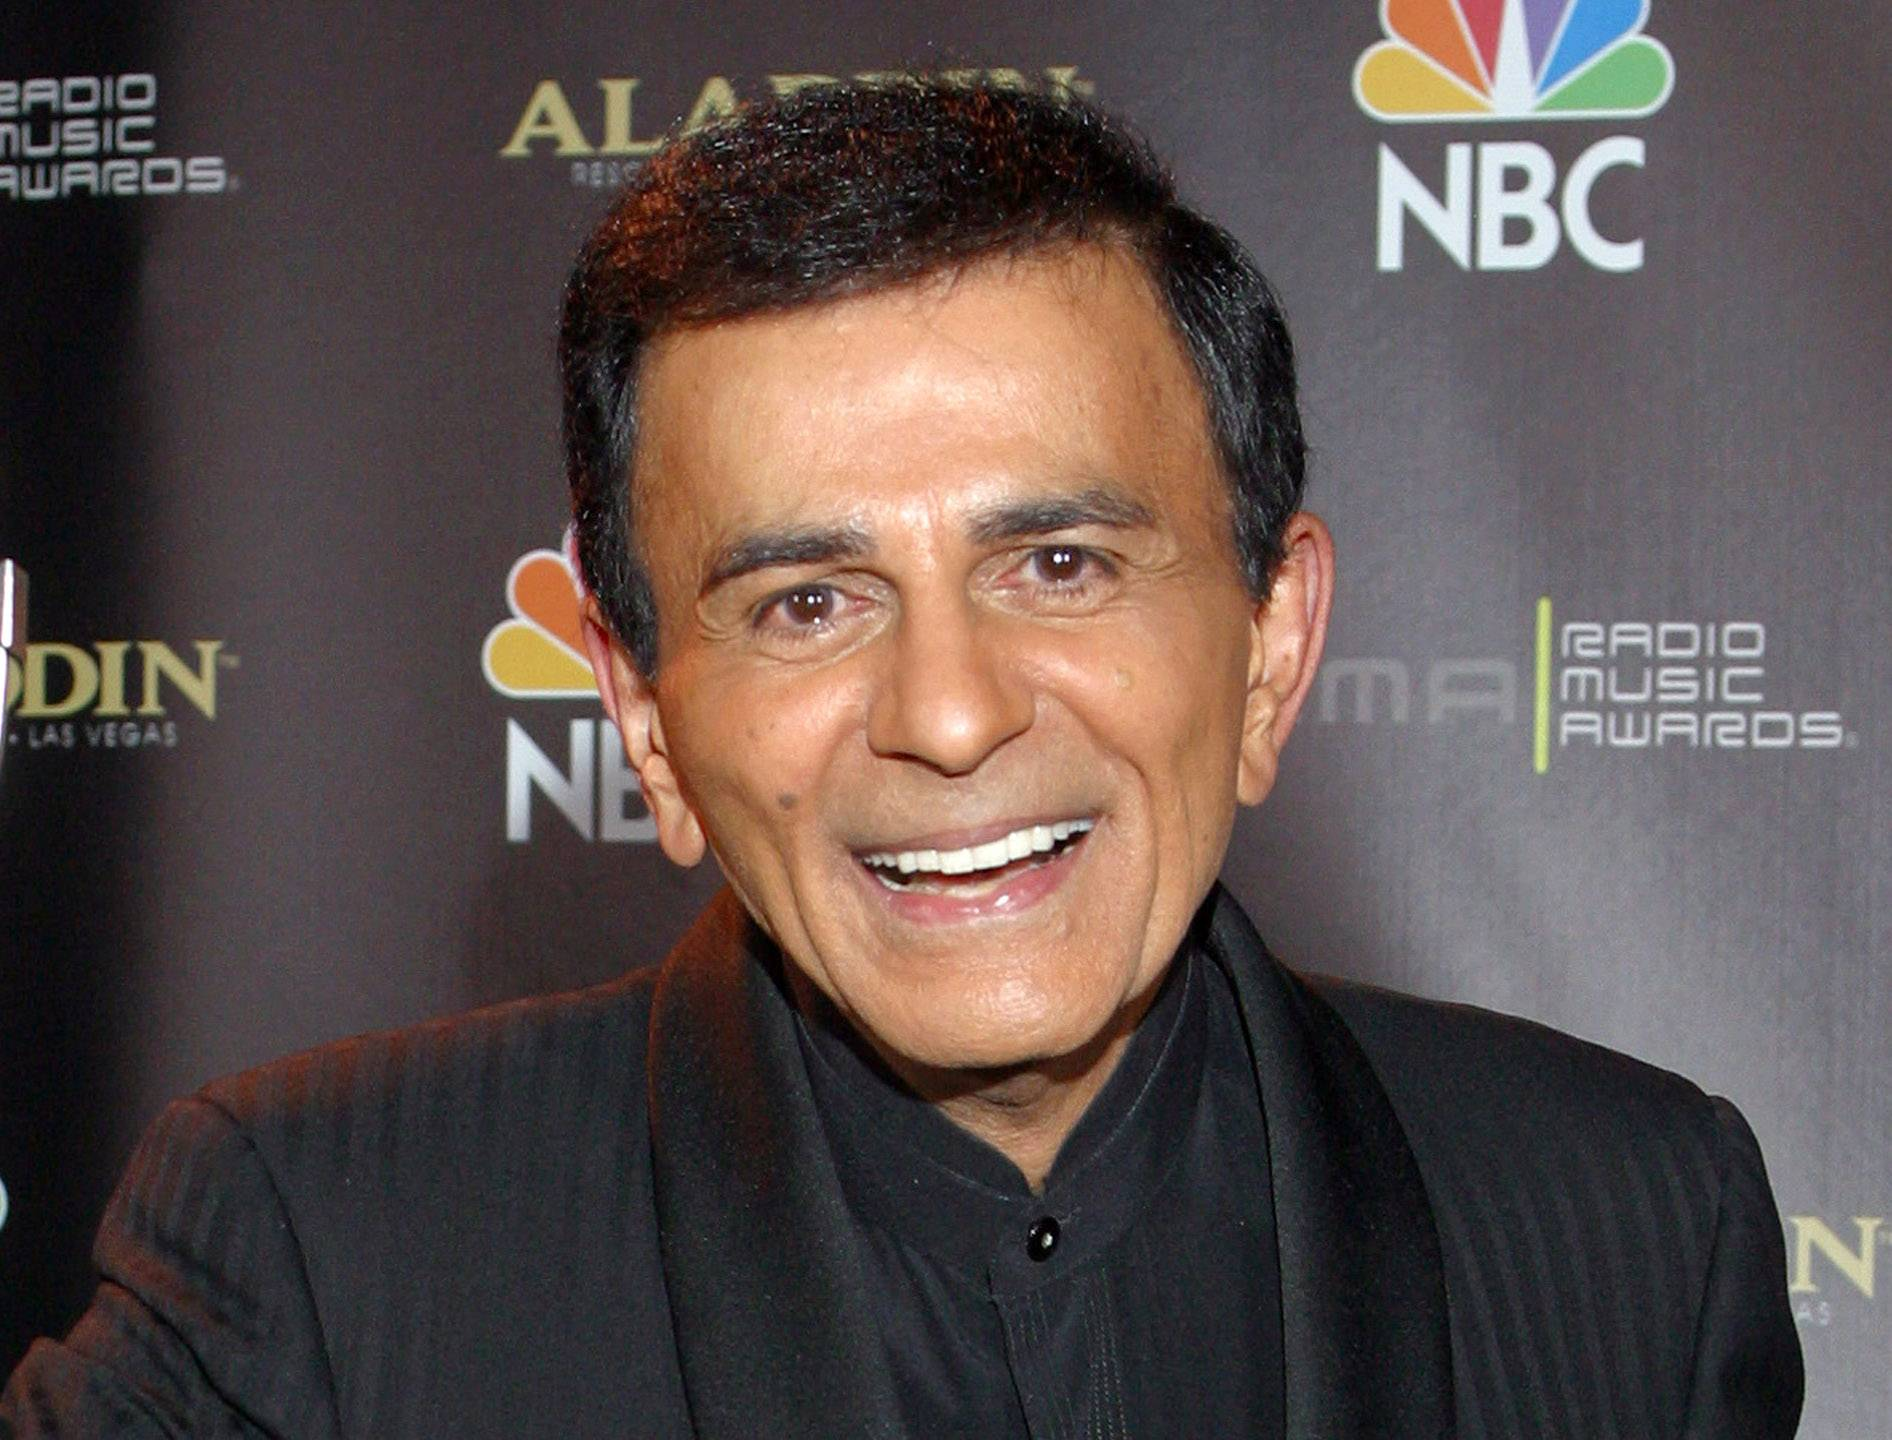 A Los Angeles judge appointed one of Casey Kasem's daughters as his temporary conservator on Monday after expressing concerns about the ailing radio personality's well being because he has been moved to a medical facility outside the United States. A lawyer for Kasem's wife said he doesn't know where he is.